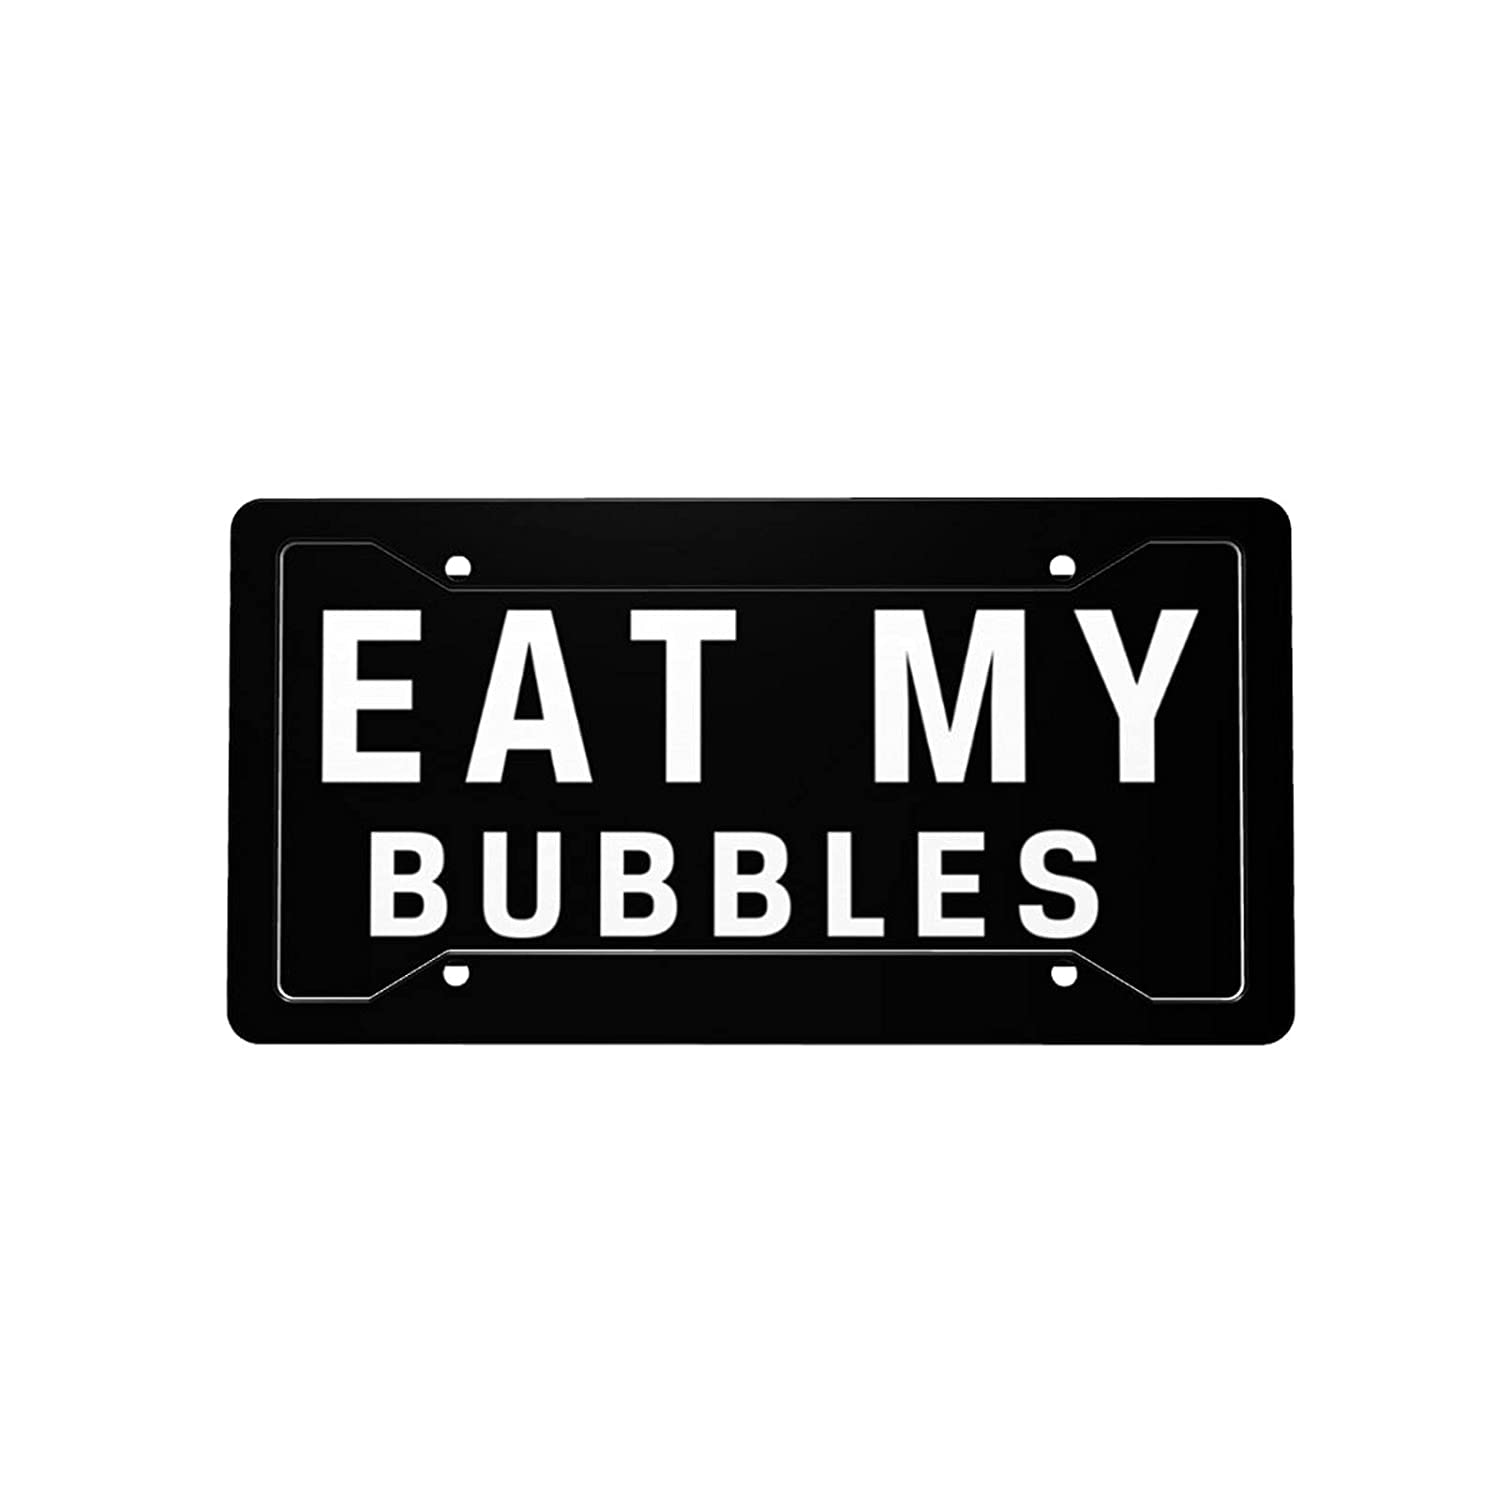 Eat My Bubbles Outstanding License Plate Decorative Front Car Vanity Licens Ranking TOP13